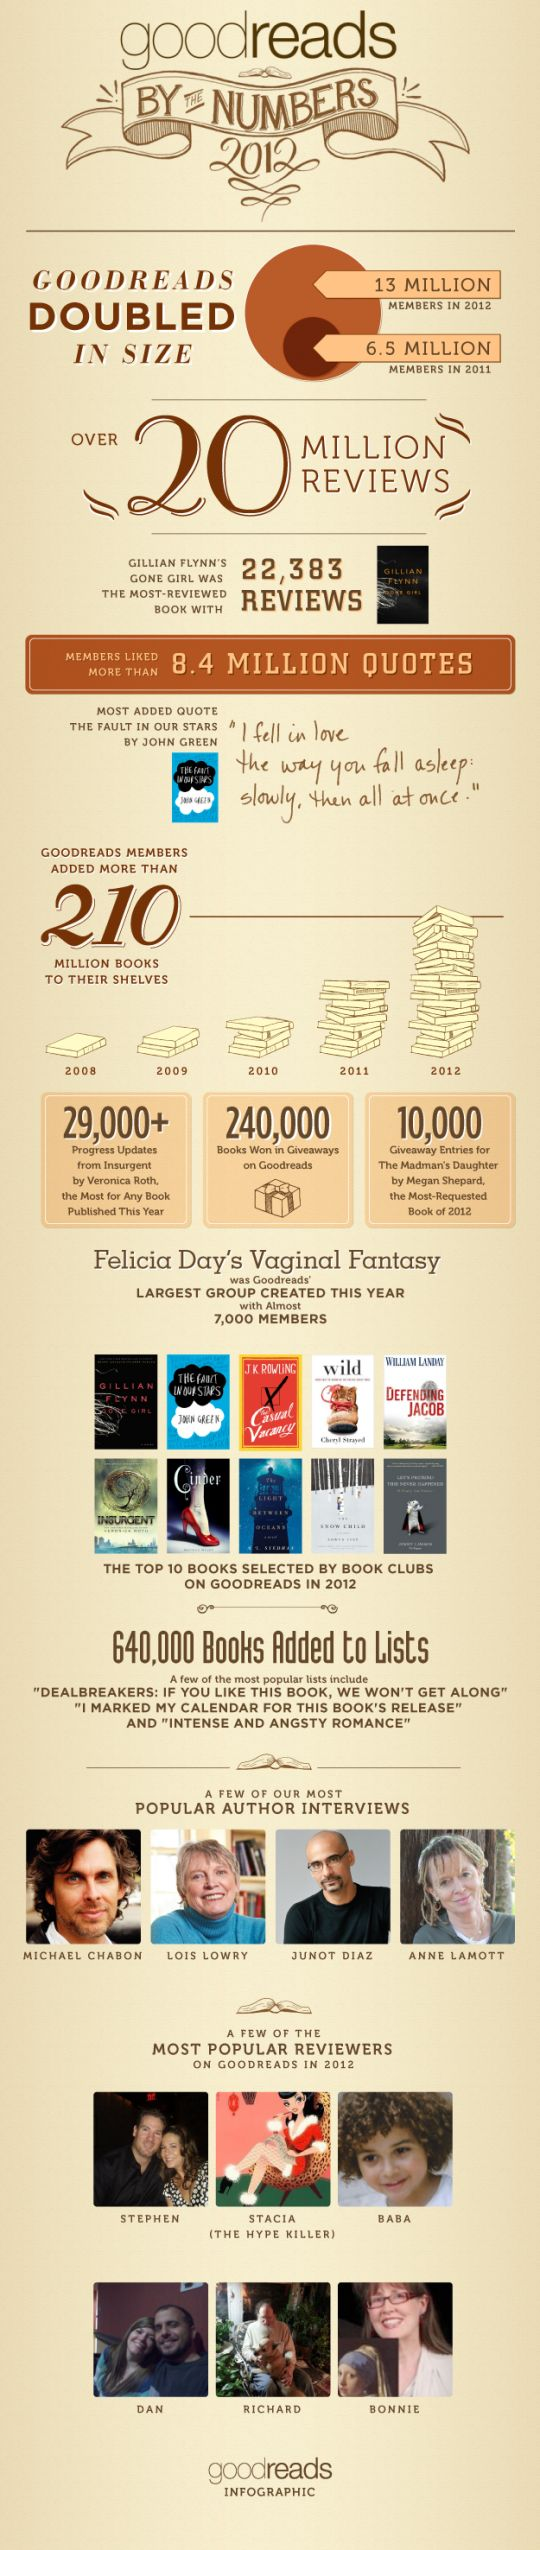 Goodreads In 2013  How Much Was It Influenced By Amazon? (infographics)